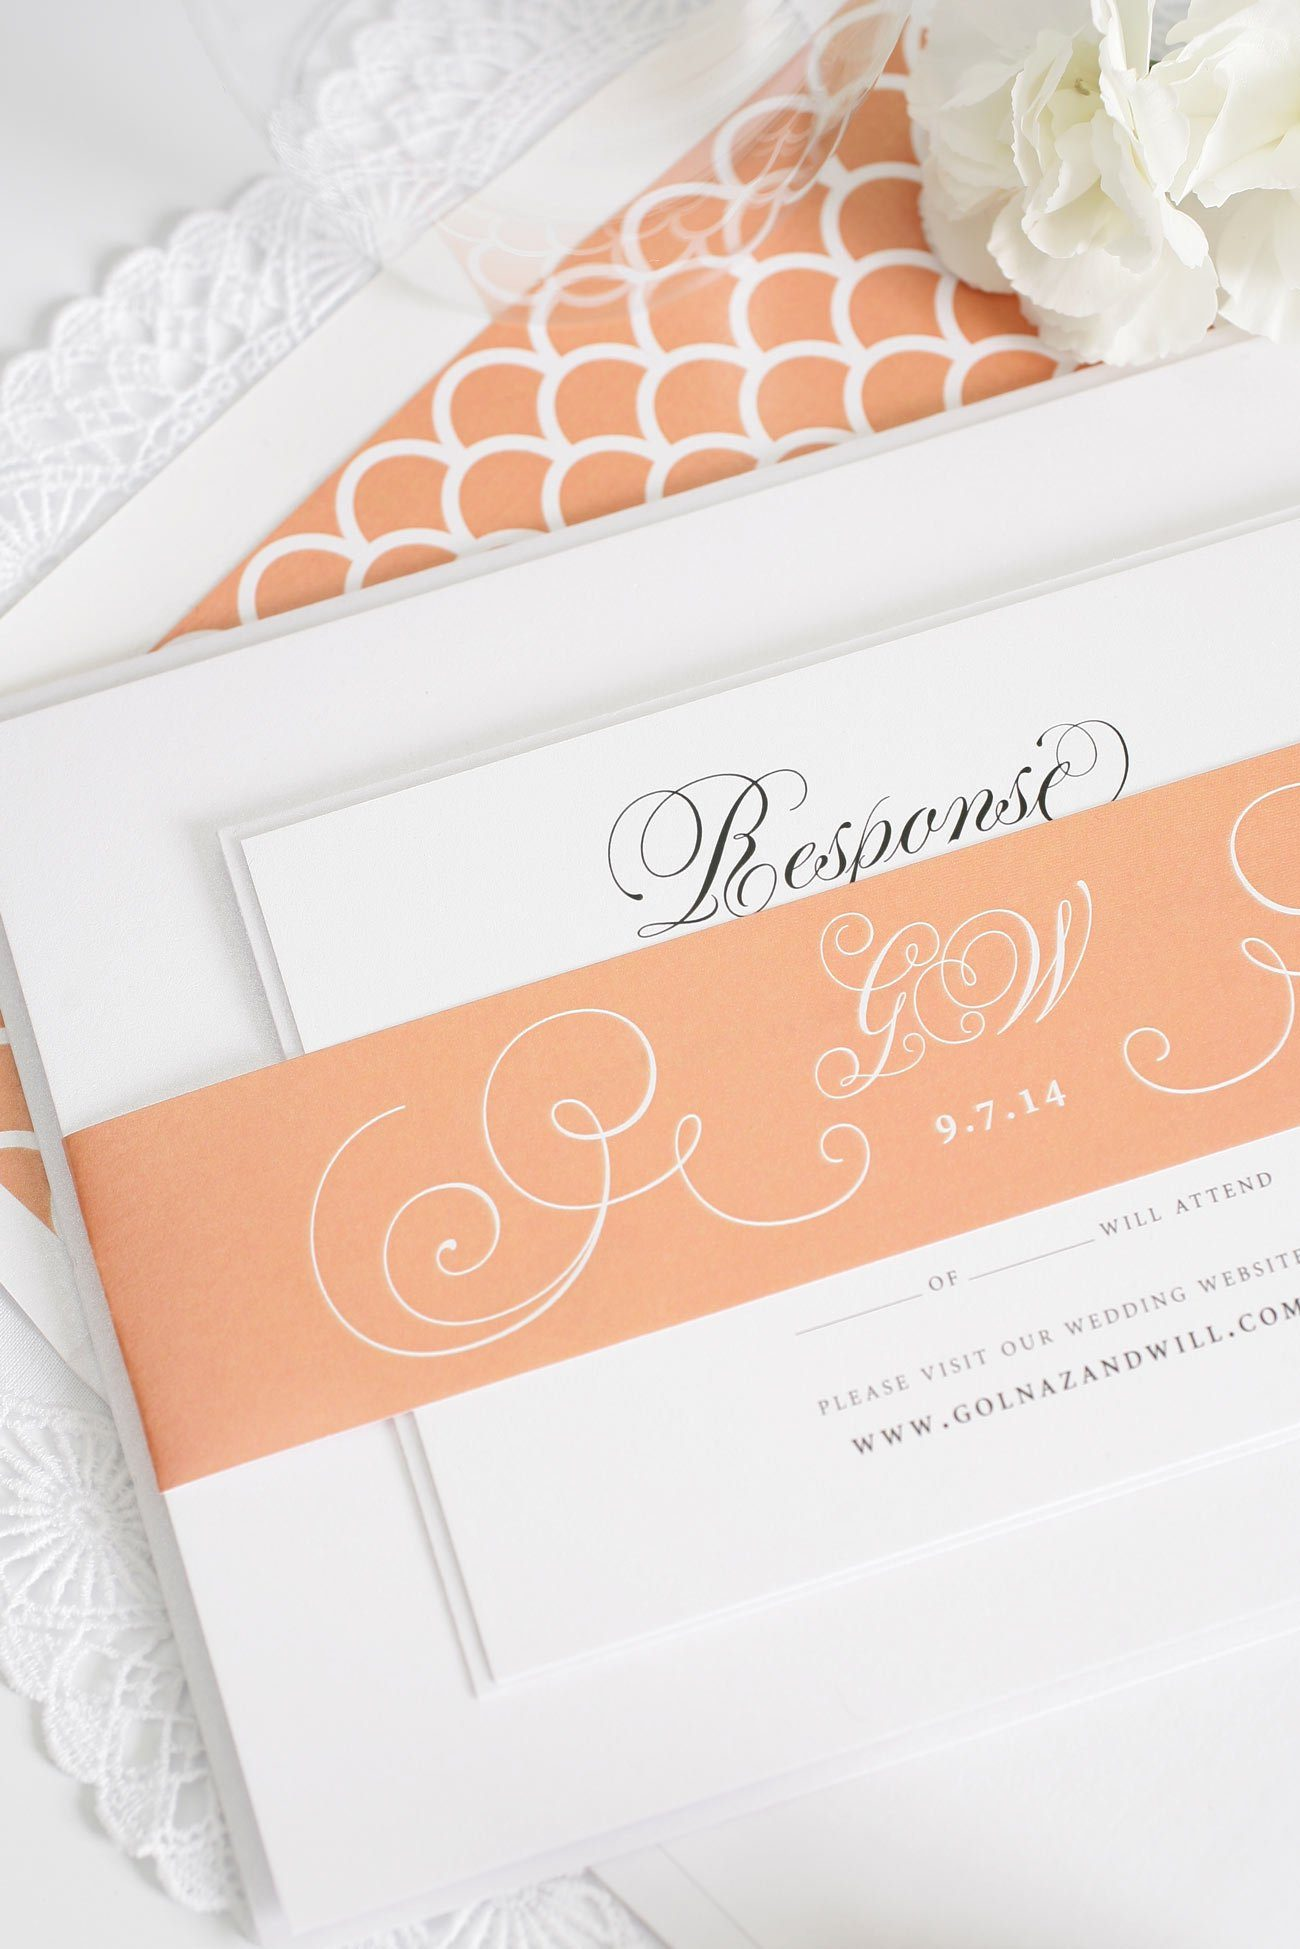 Peach wedding invitations with shells envelope liner